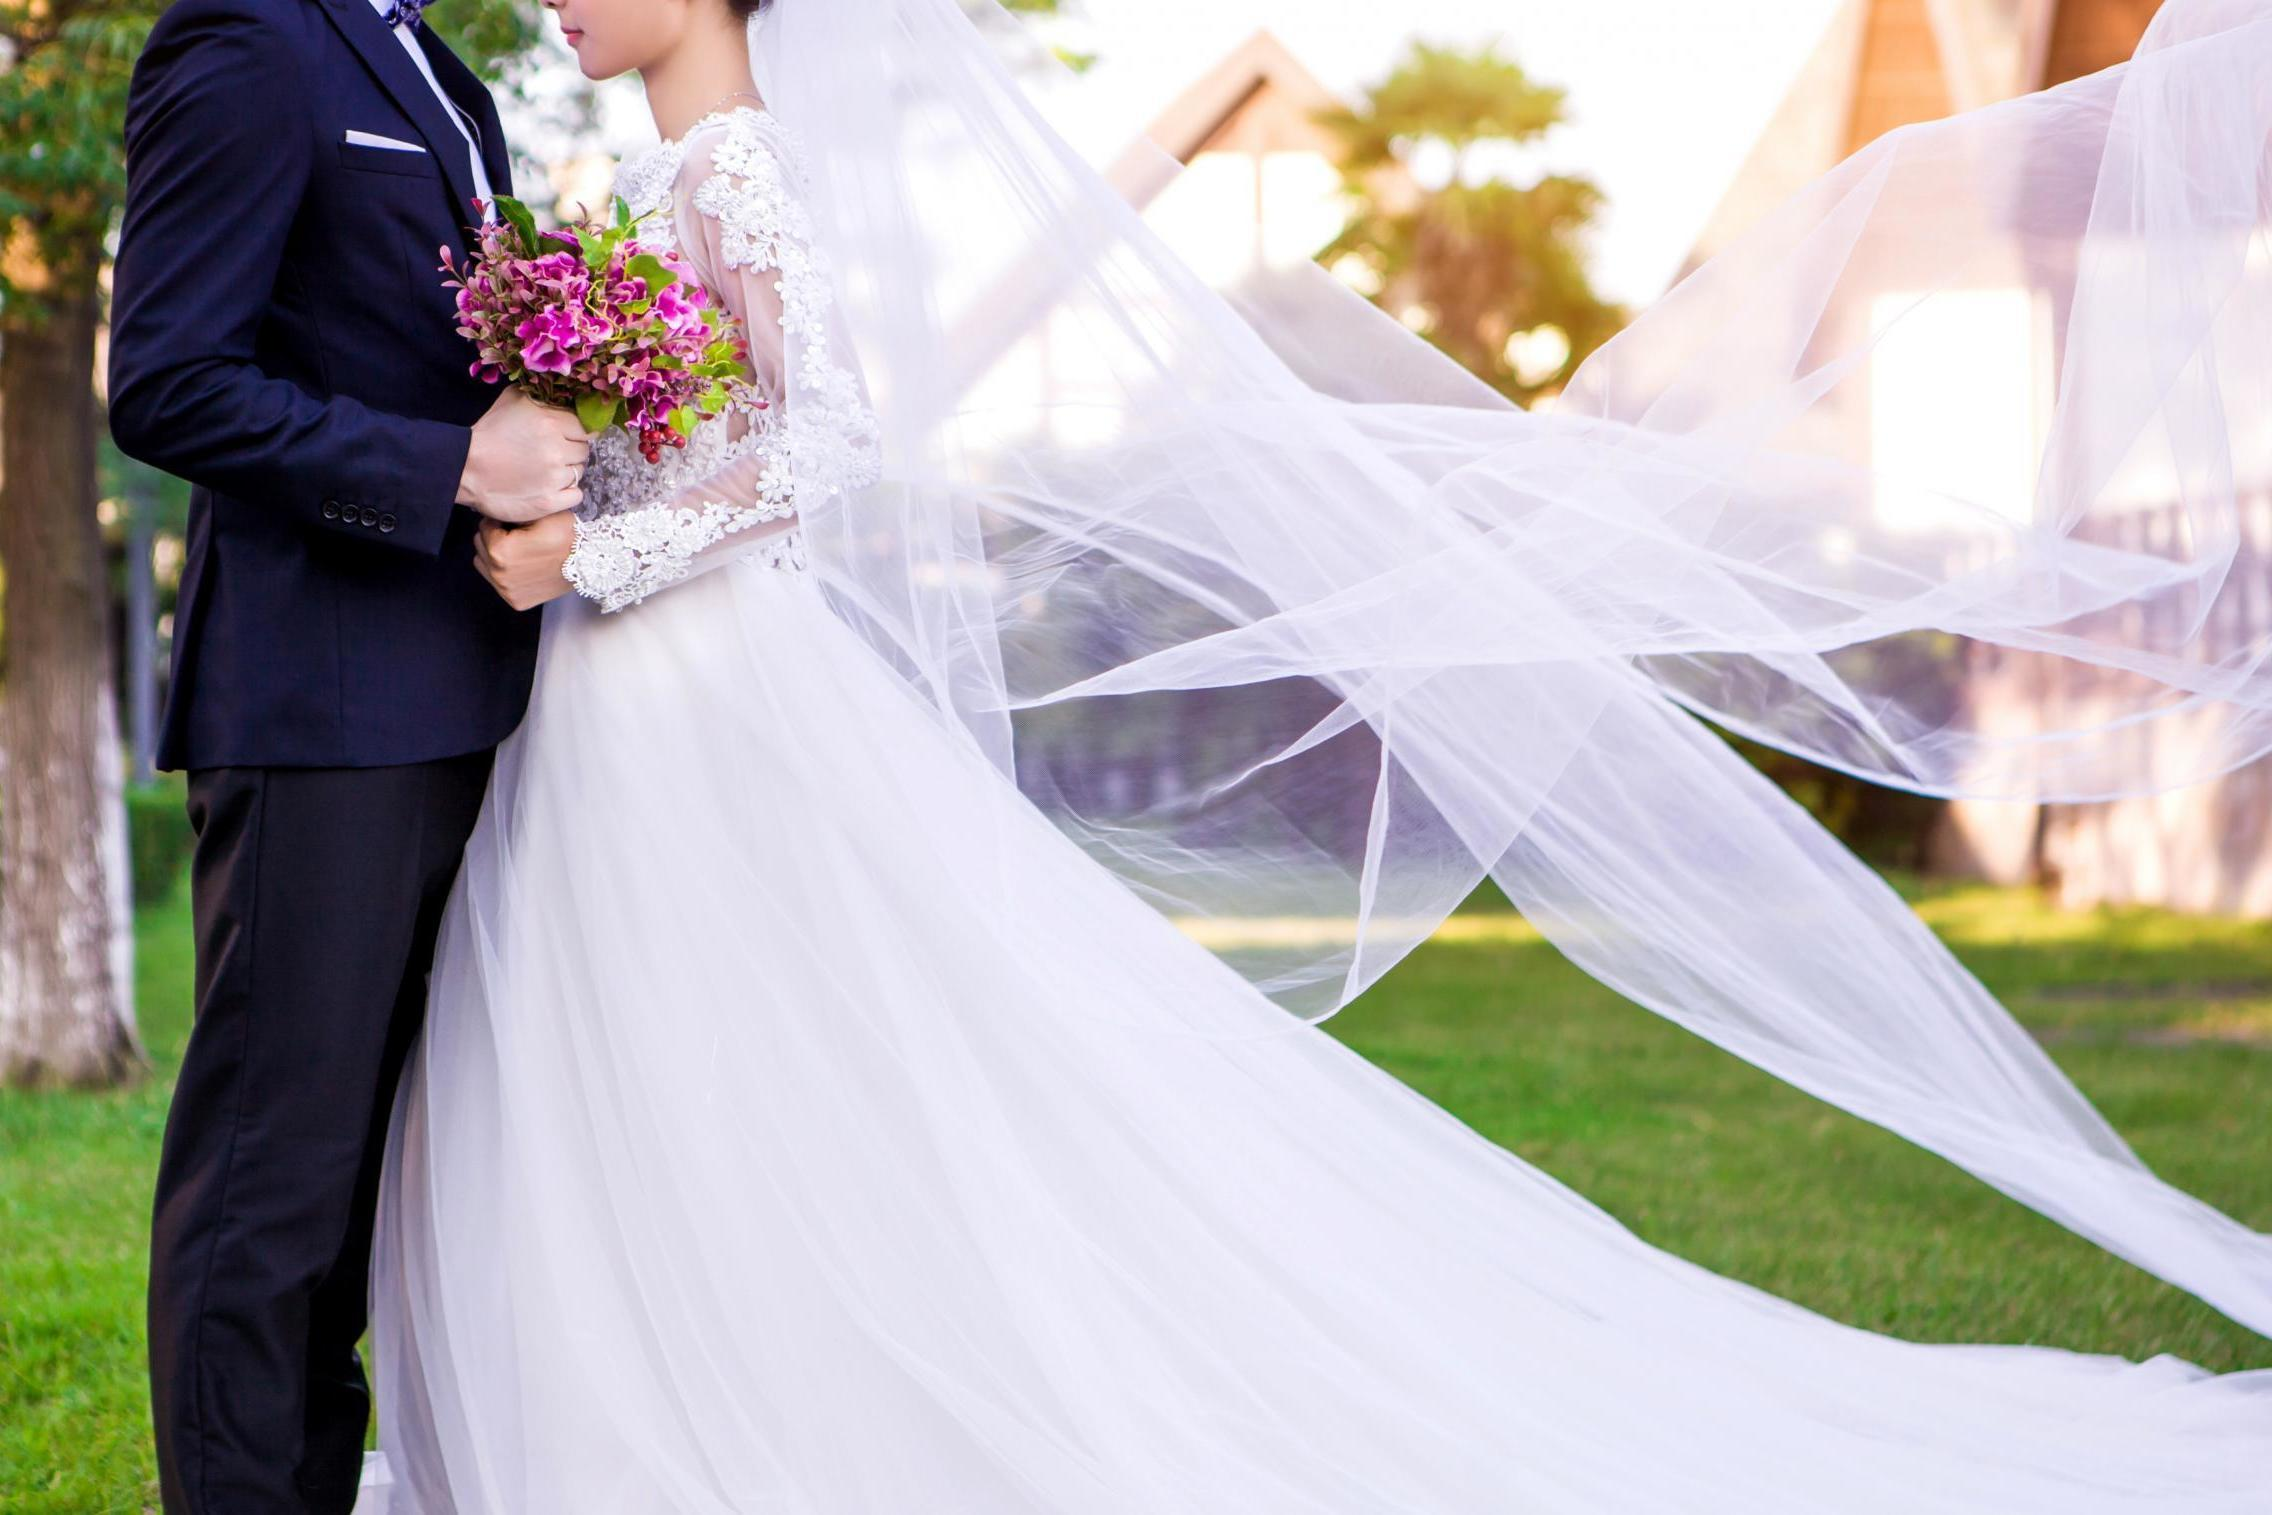 Creating a whole wedding in …minutes!